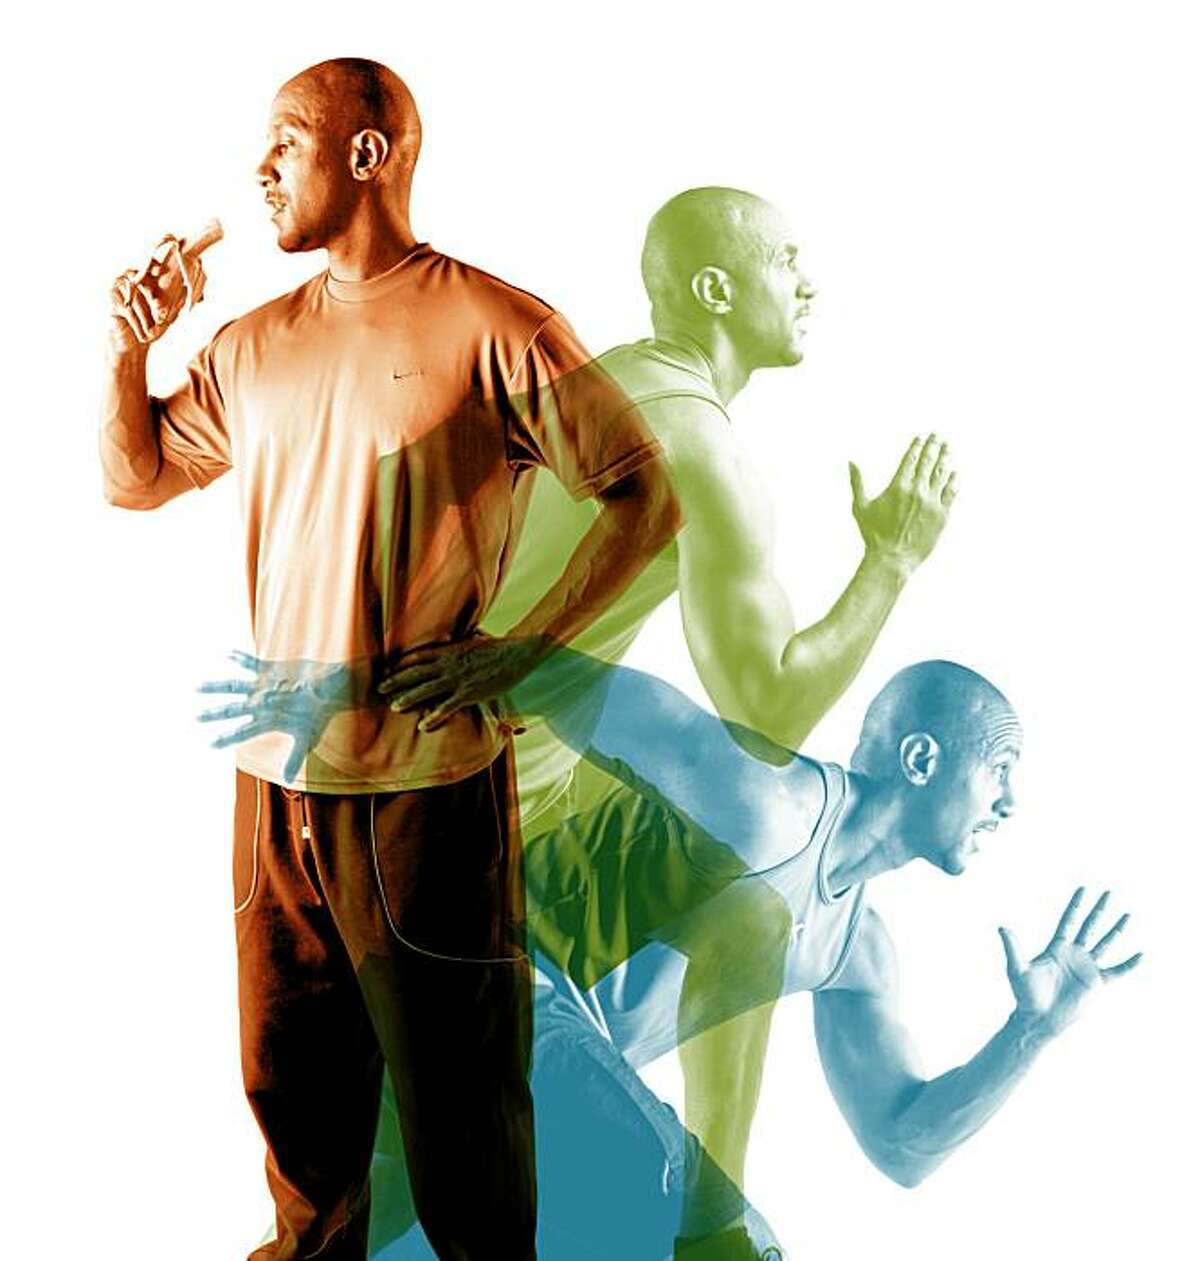 Photo illustration of an athlete eating before exercising. Photos by Russell Yip; illustration by Erick Wong